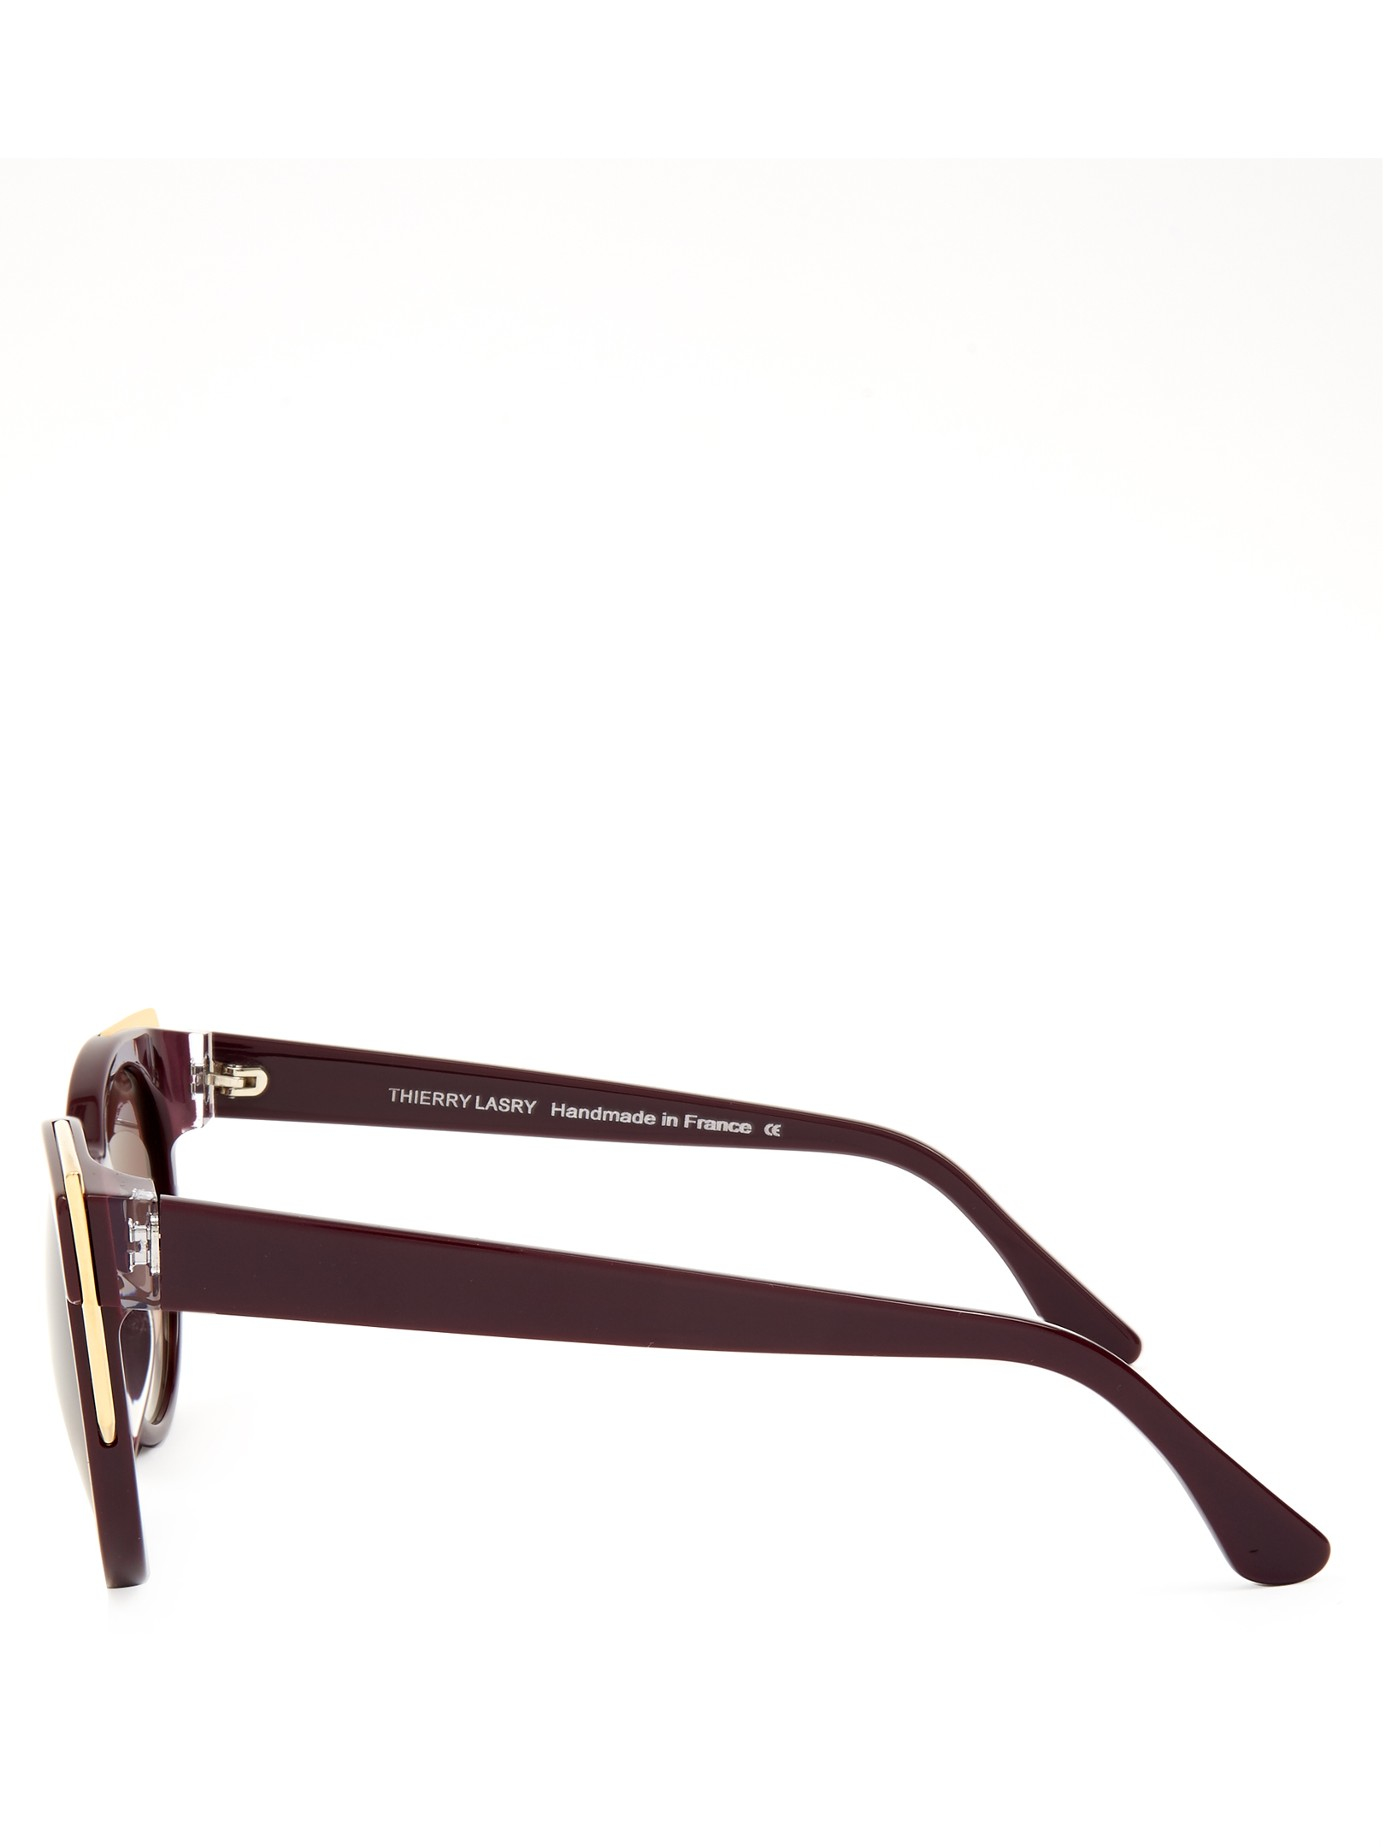 Thierry Lasry Monogamy Cat-eye Sunglasses in Purple (Brown)